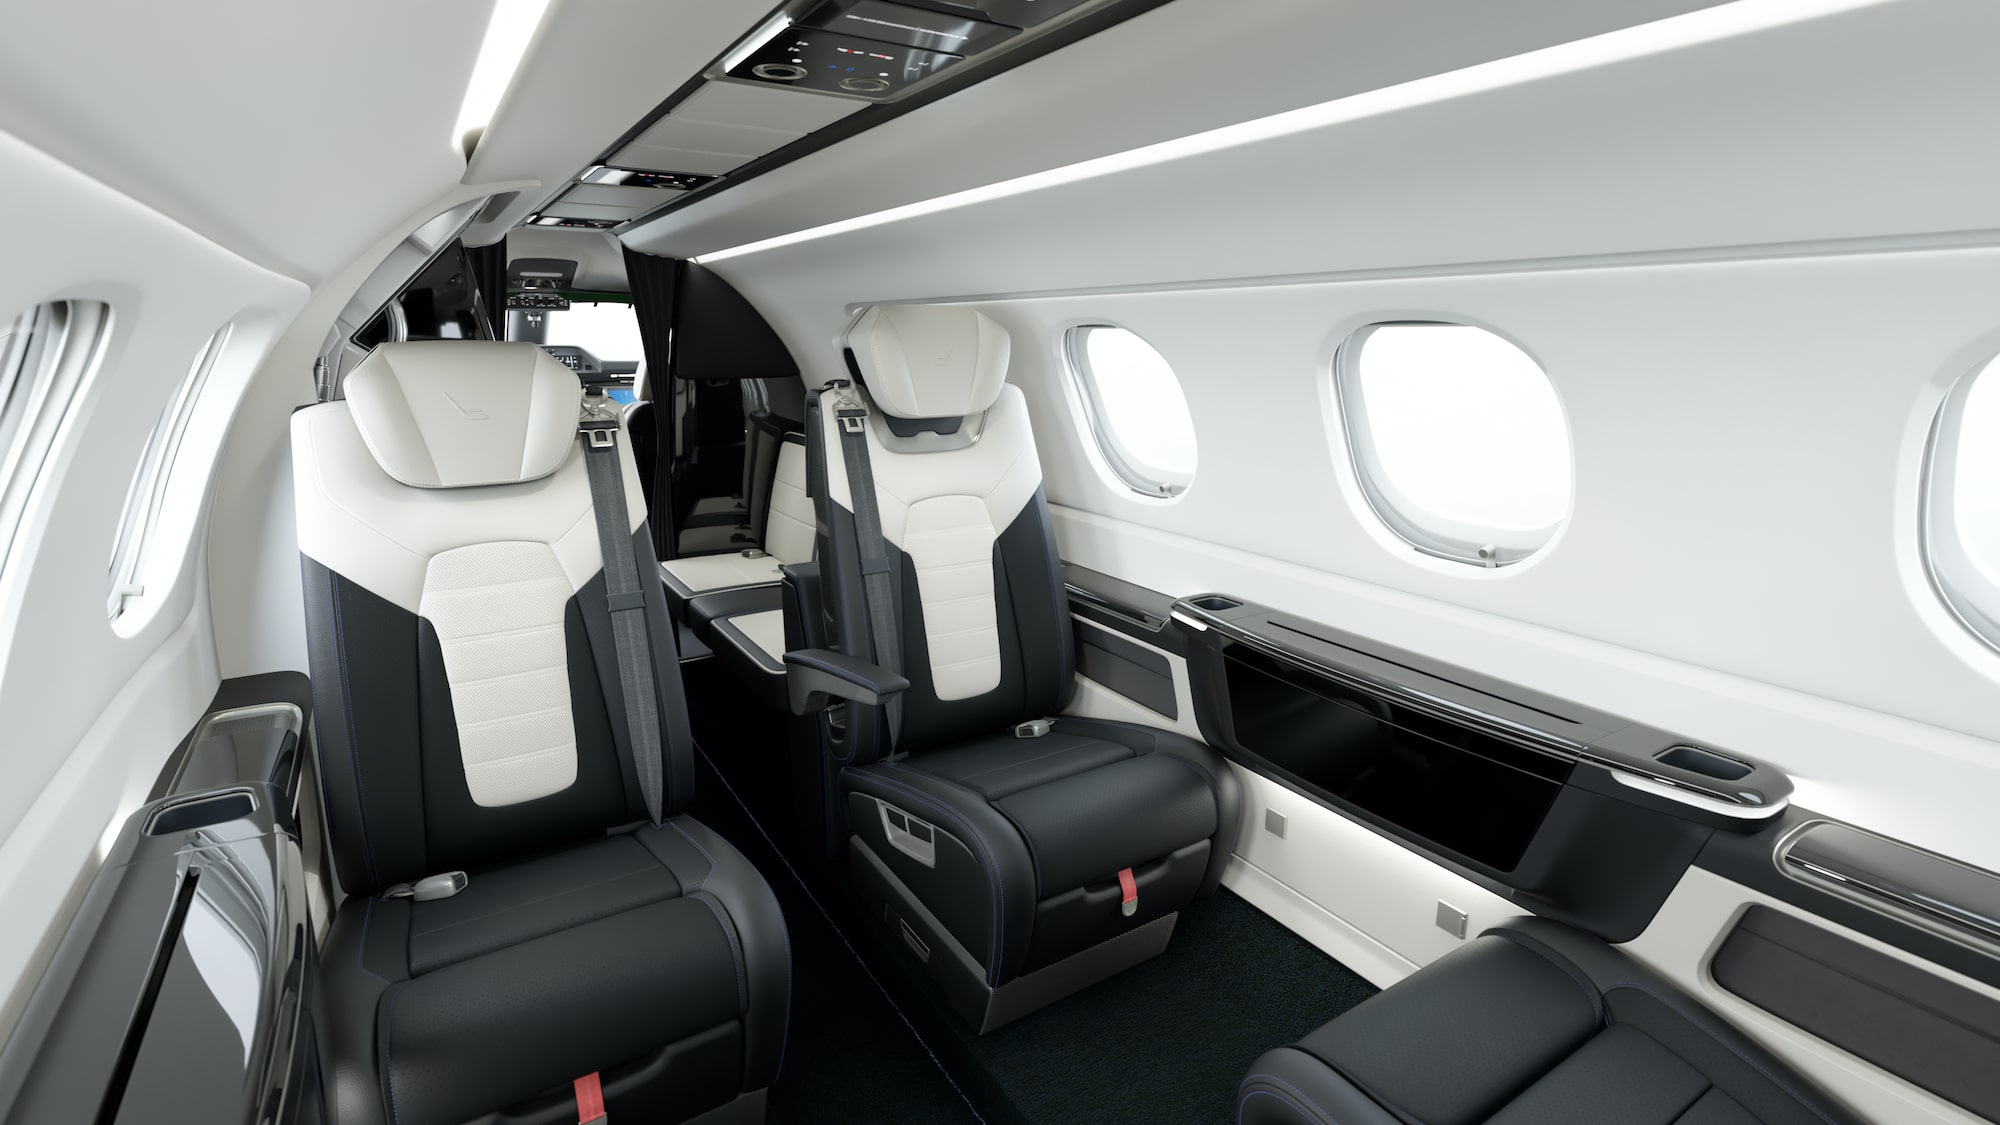 Interior of the Phenom 300E Interior